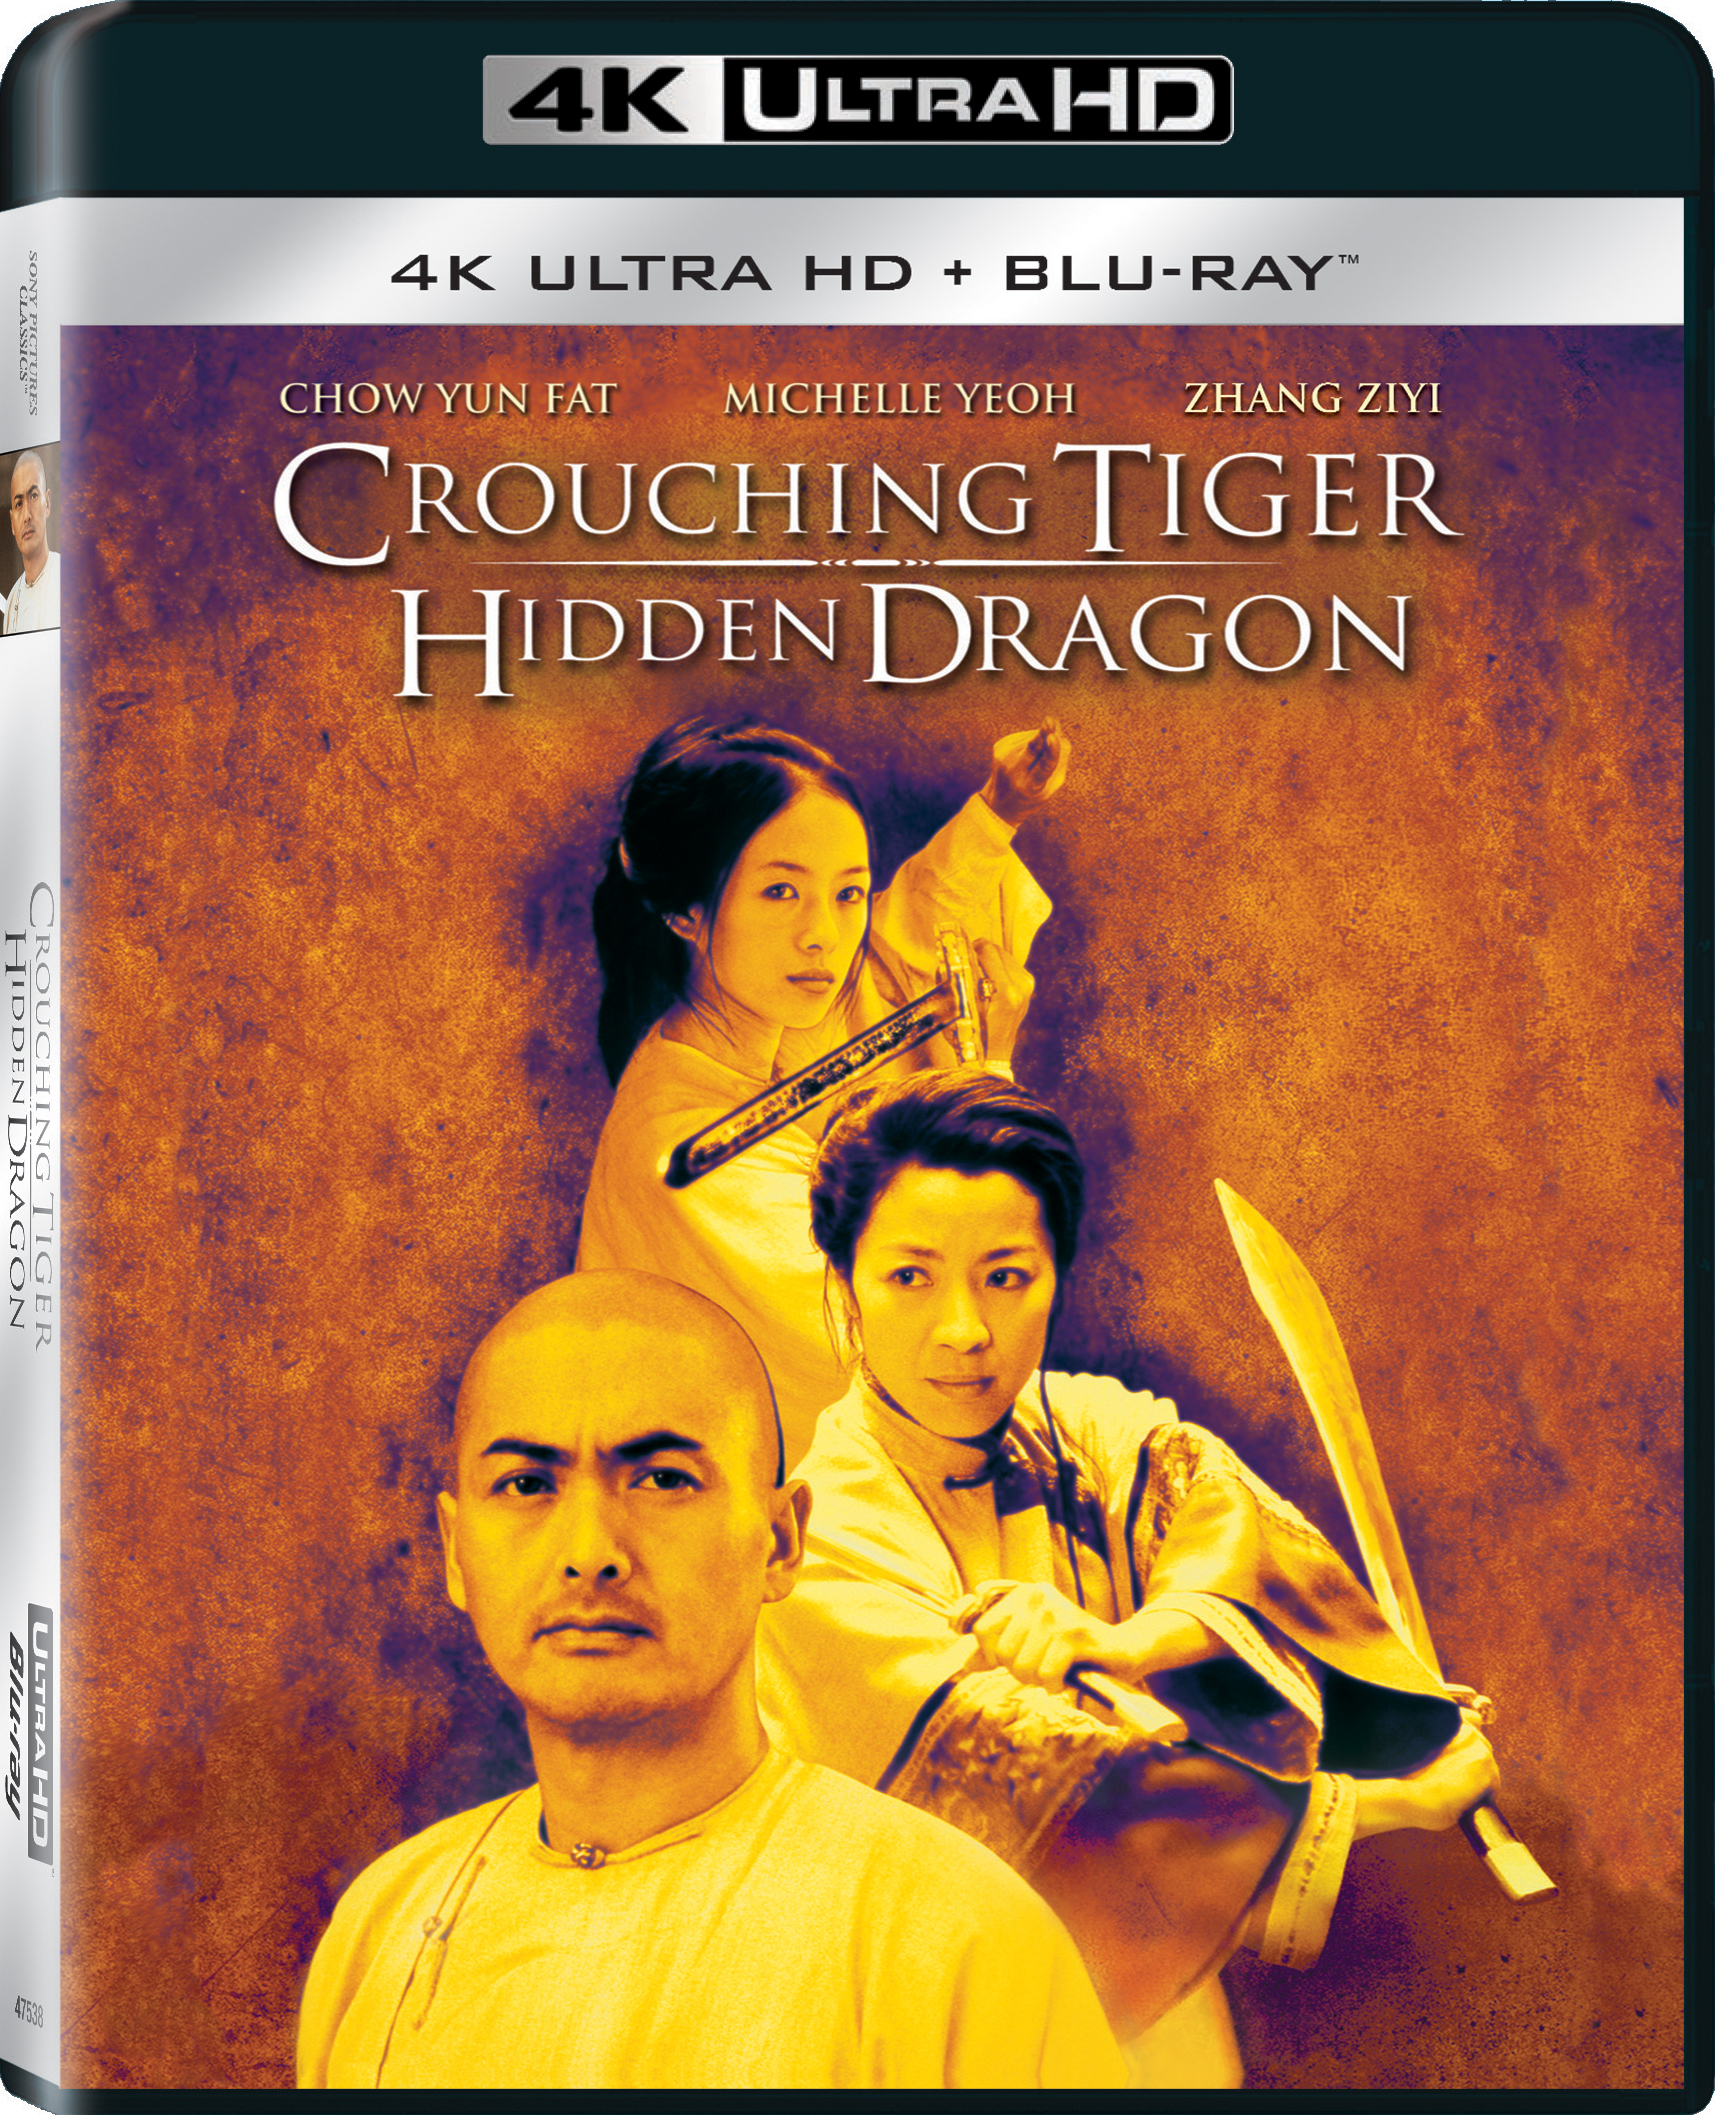 Crouching Tiger, Hidden Dragon (2000) 4K Ultra HD Blu-ray